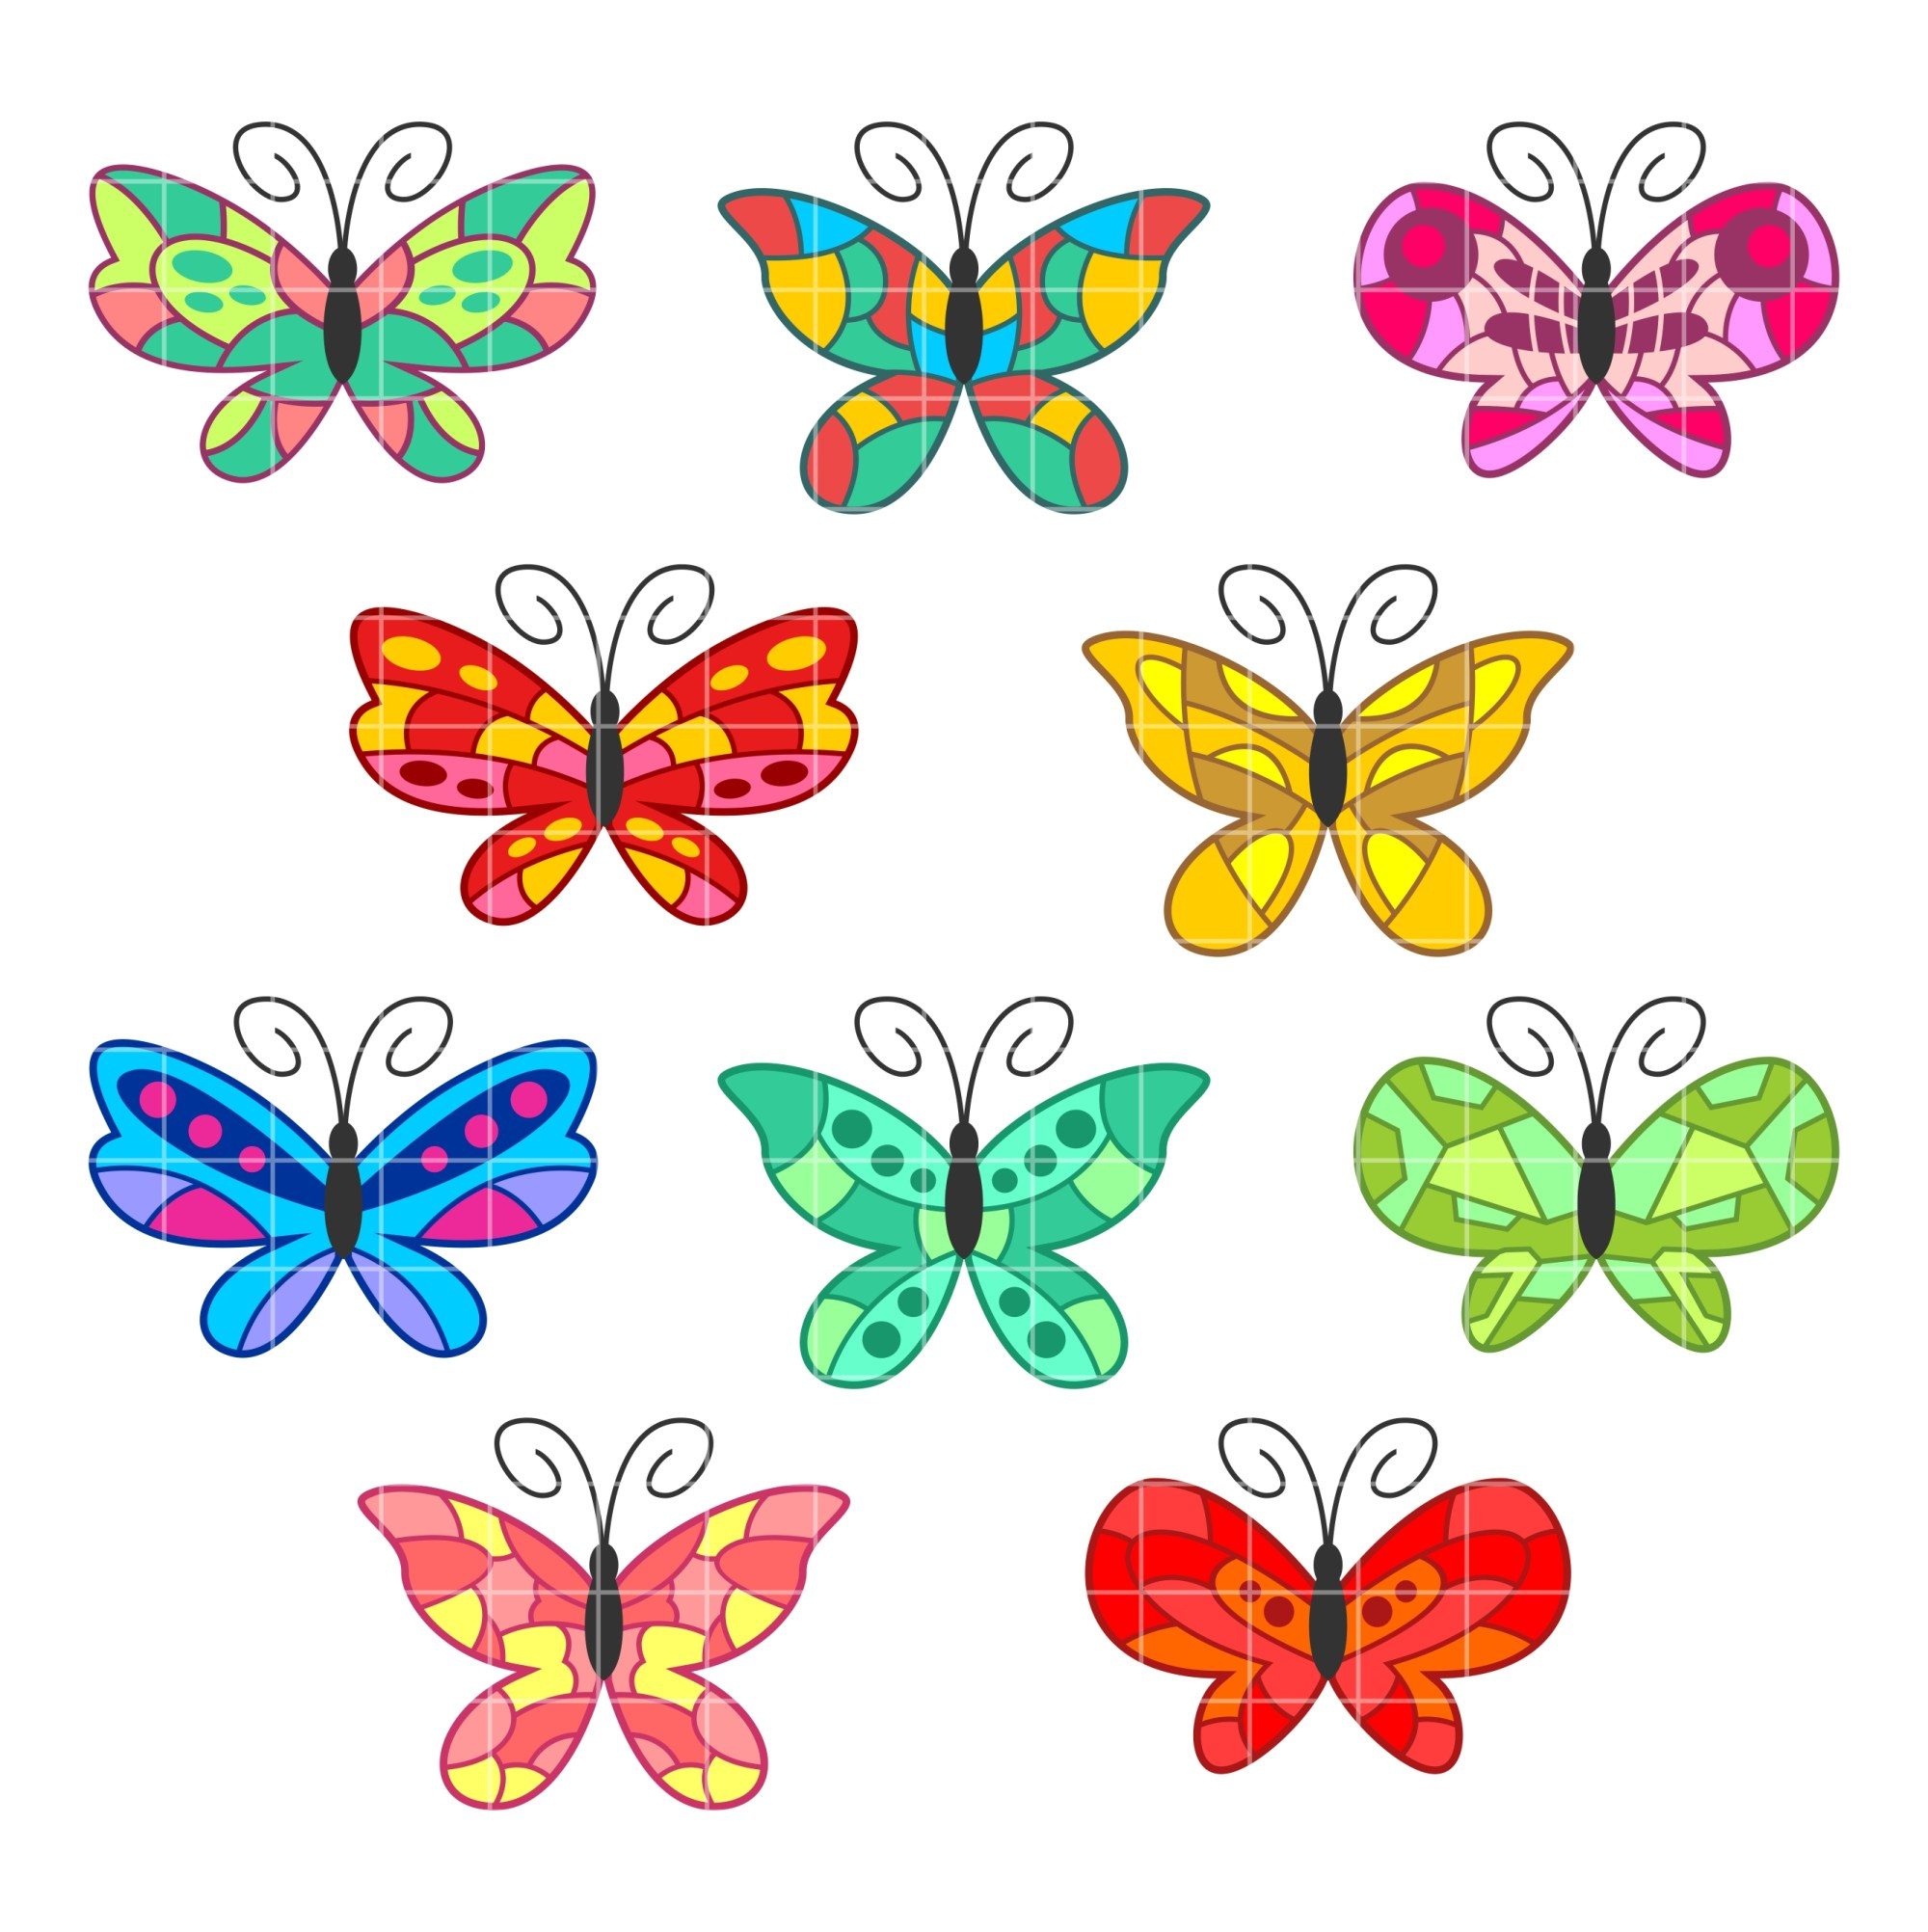 hight resolution of butterflies colorful butterfly designs clipart clipartfest